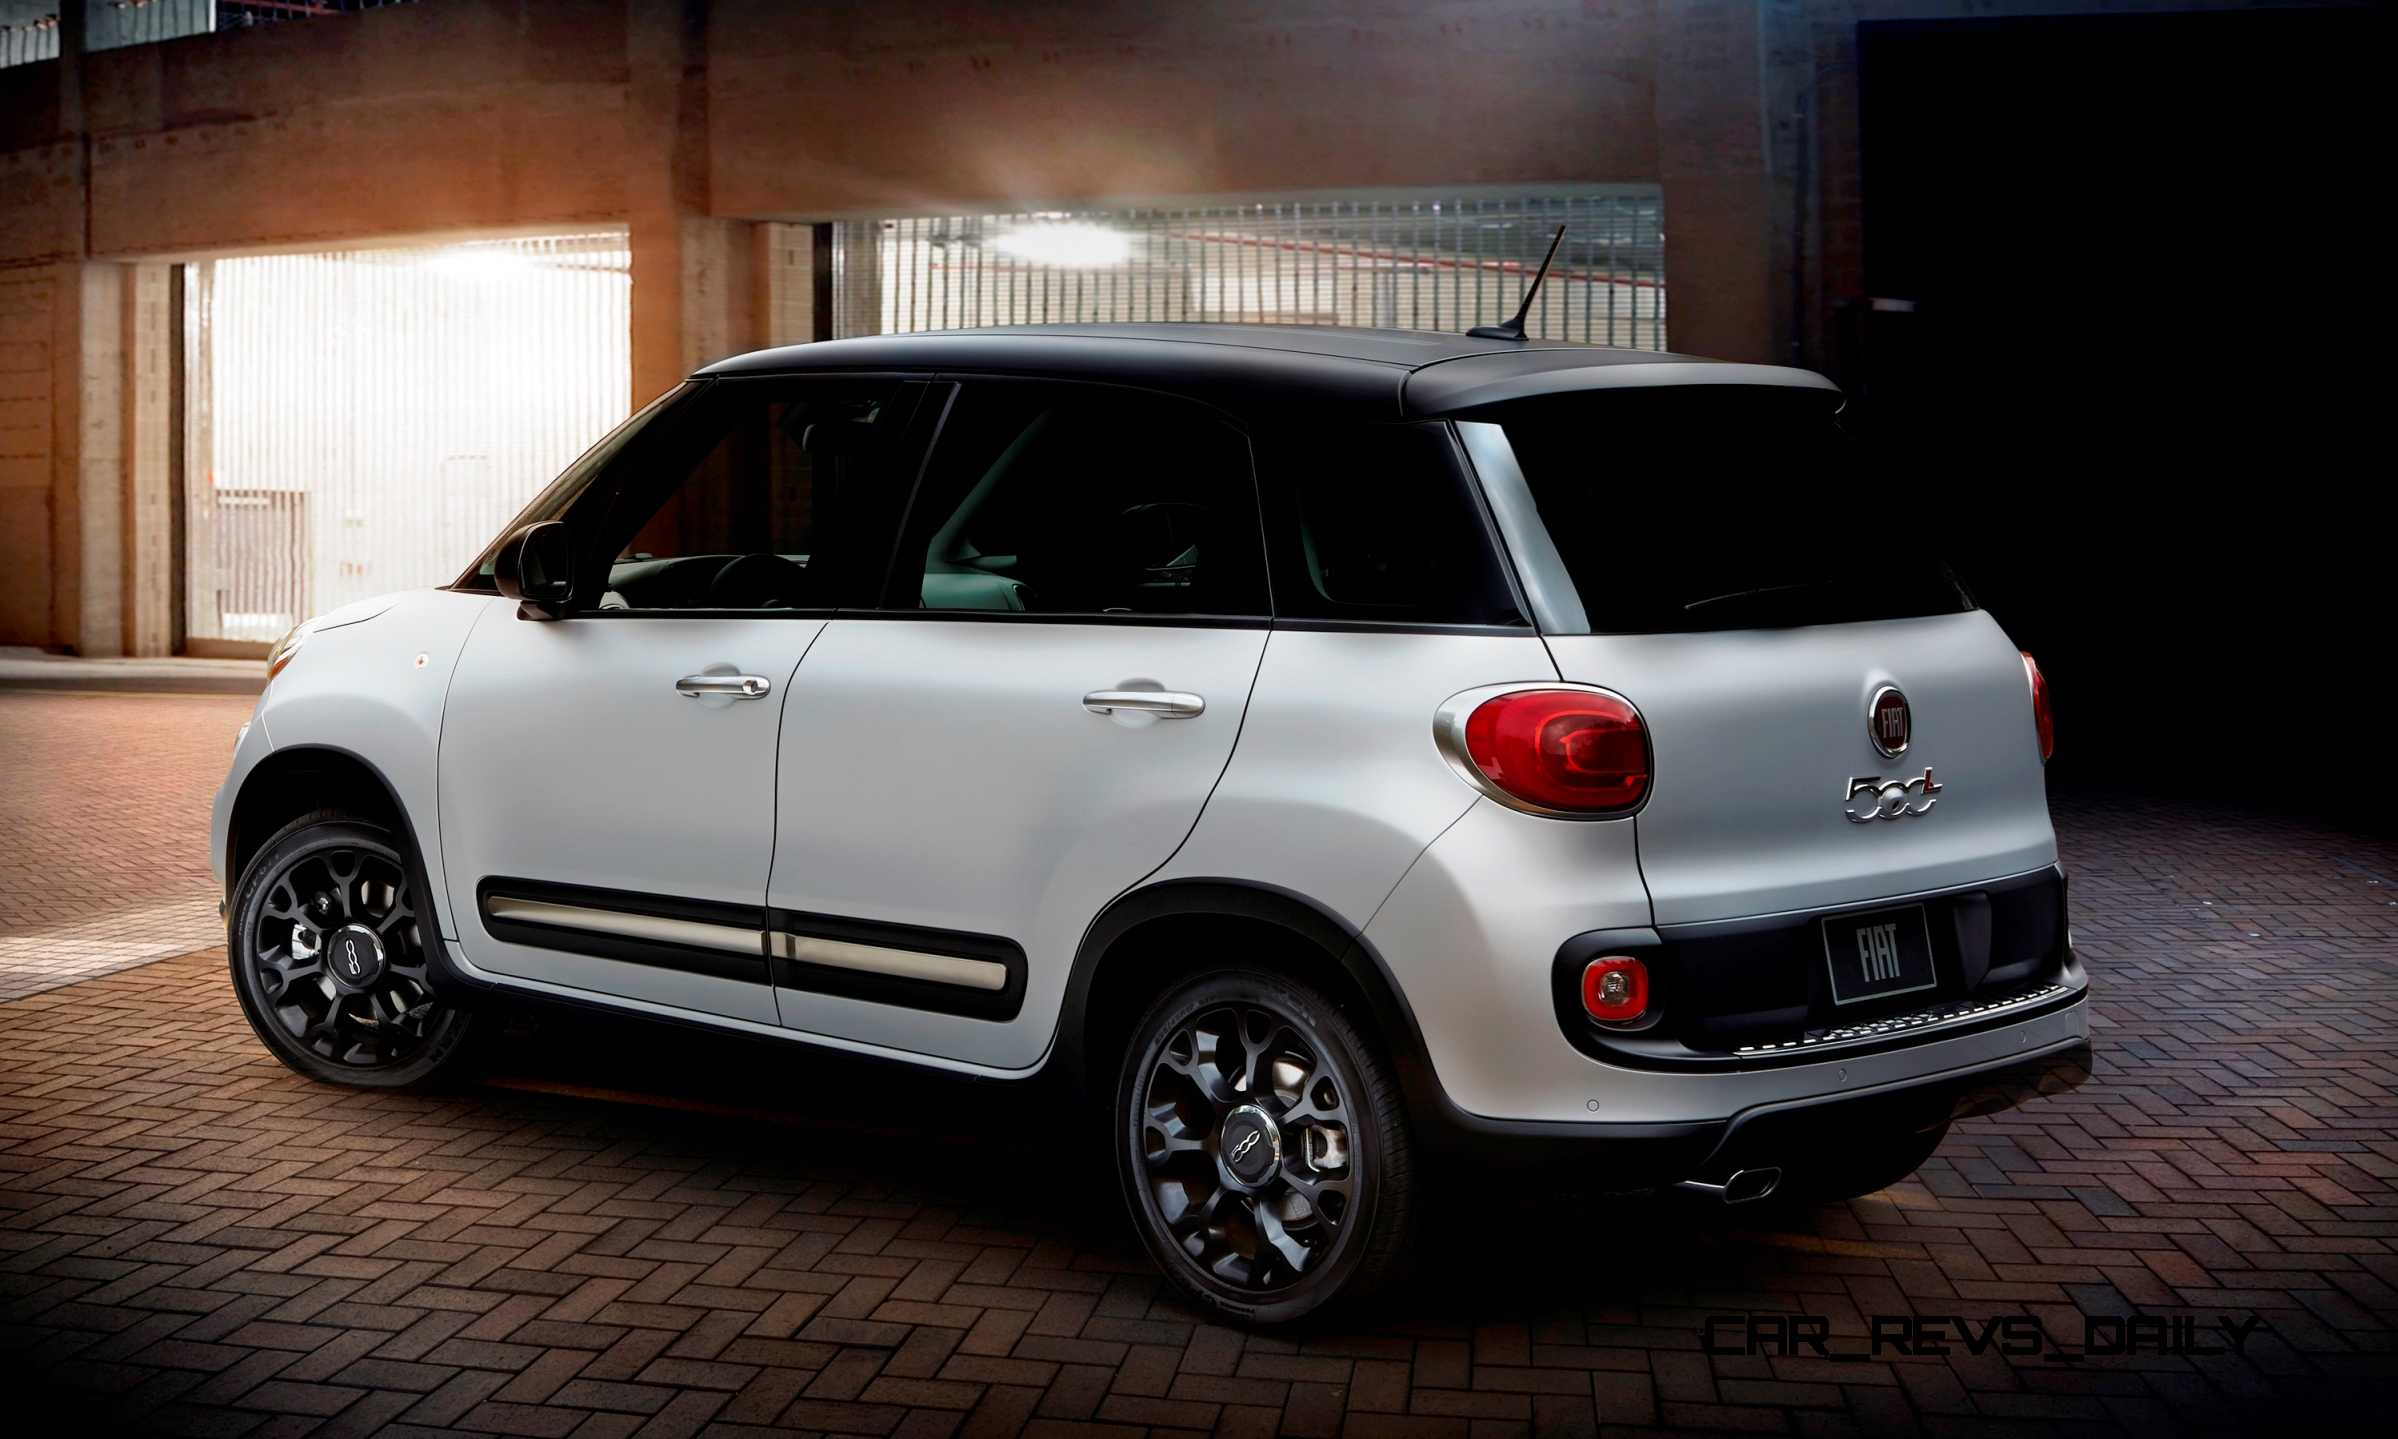 a fiat jato fullback segment alaskan and definition join renault latin growing